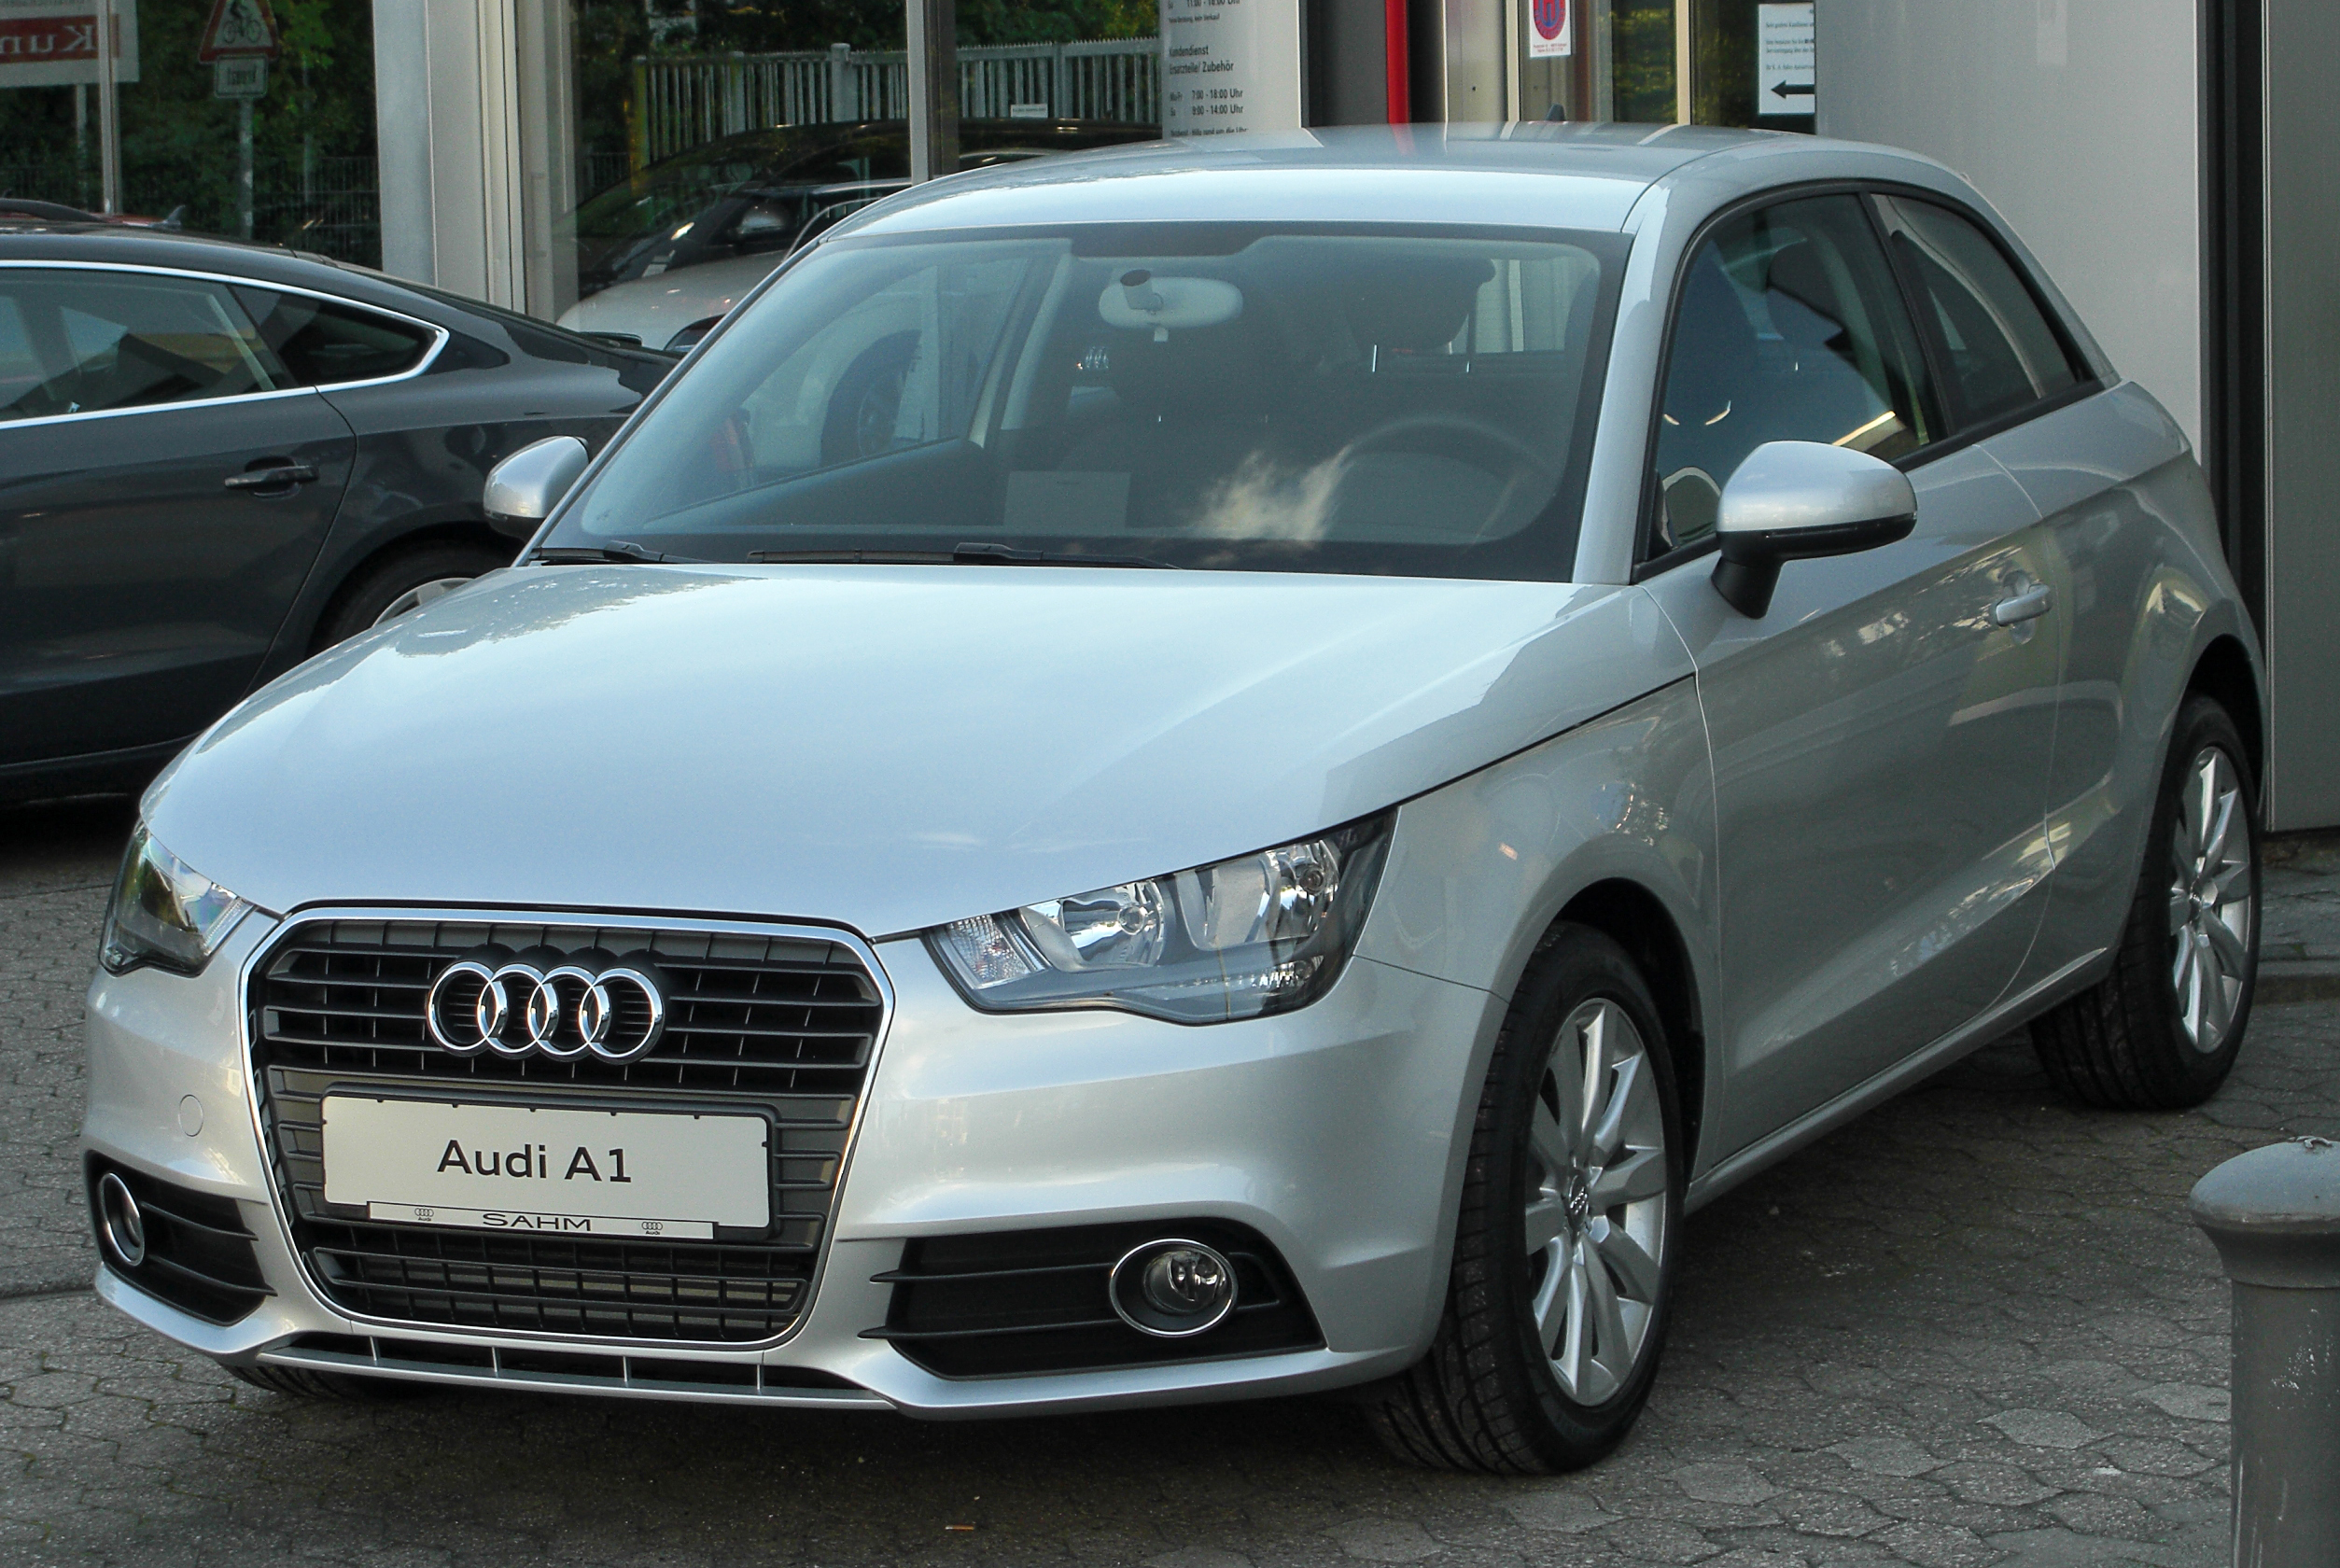 file audi a1 1 6 tdi ambition front wikimedia commons. Black Bedroom Furniture Sets. Home Design Ideas